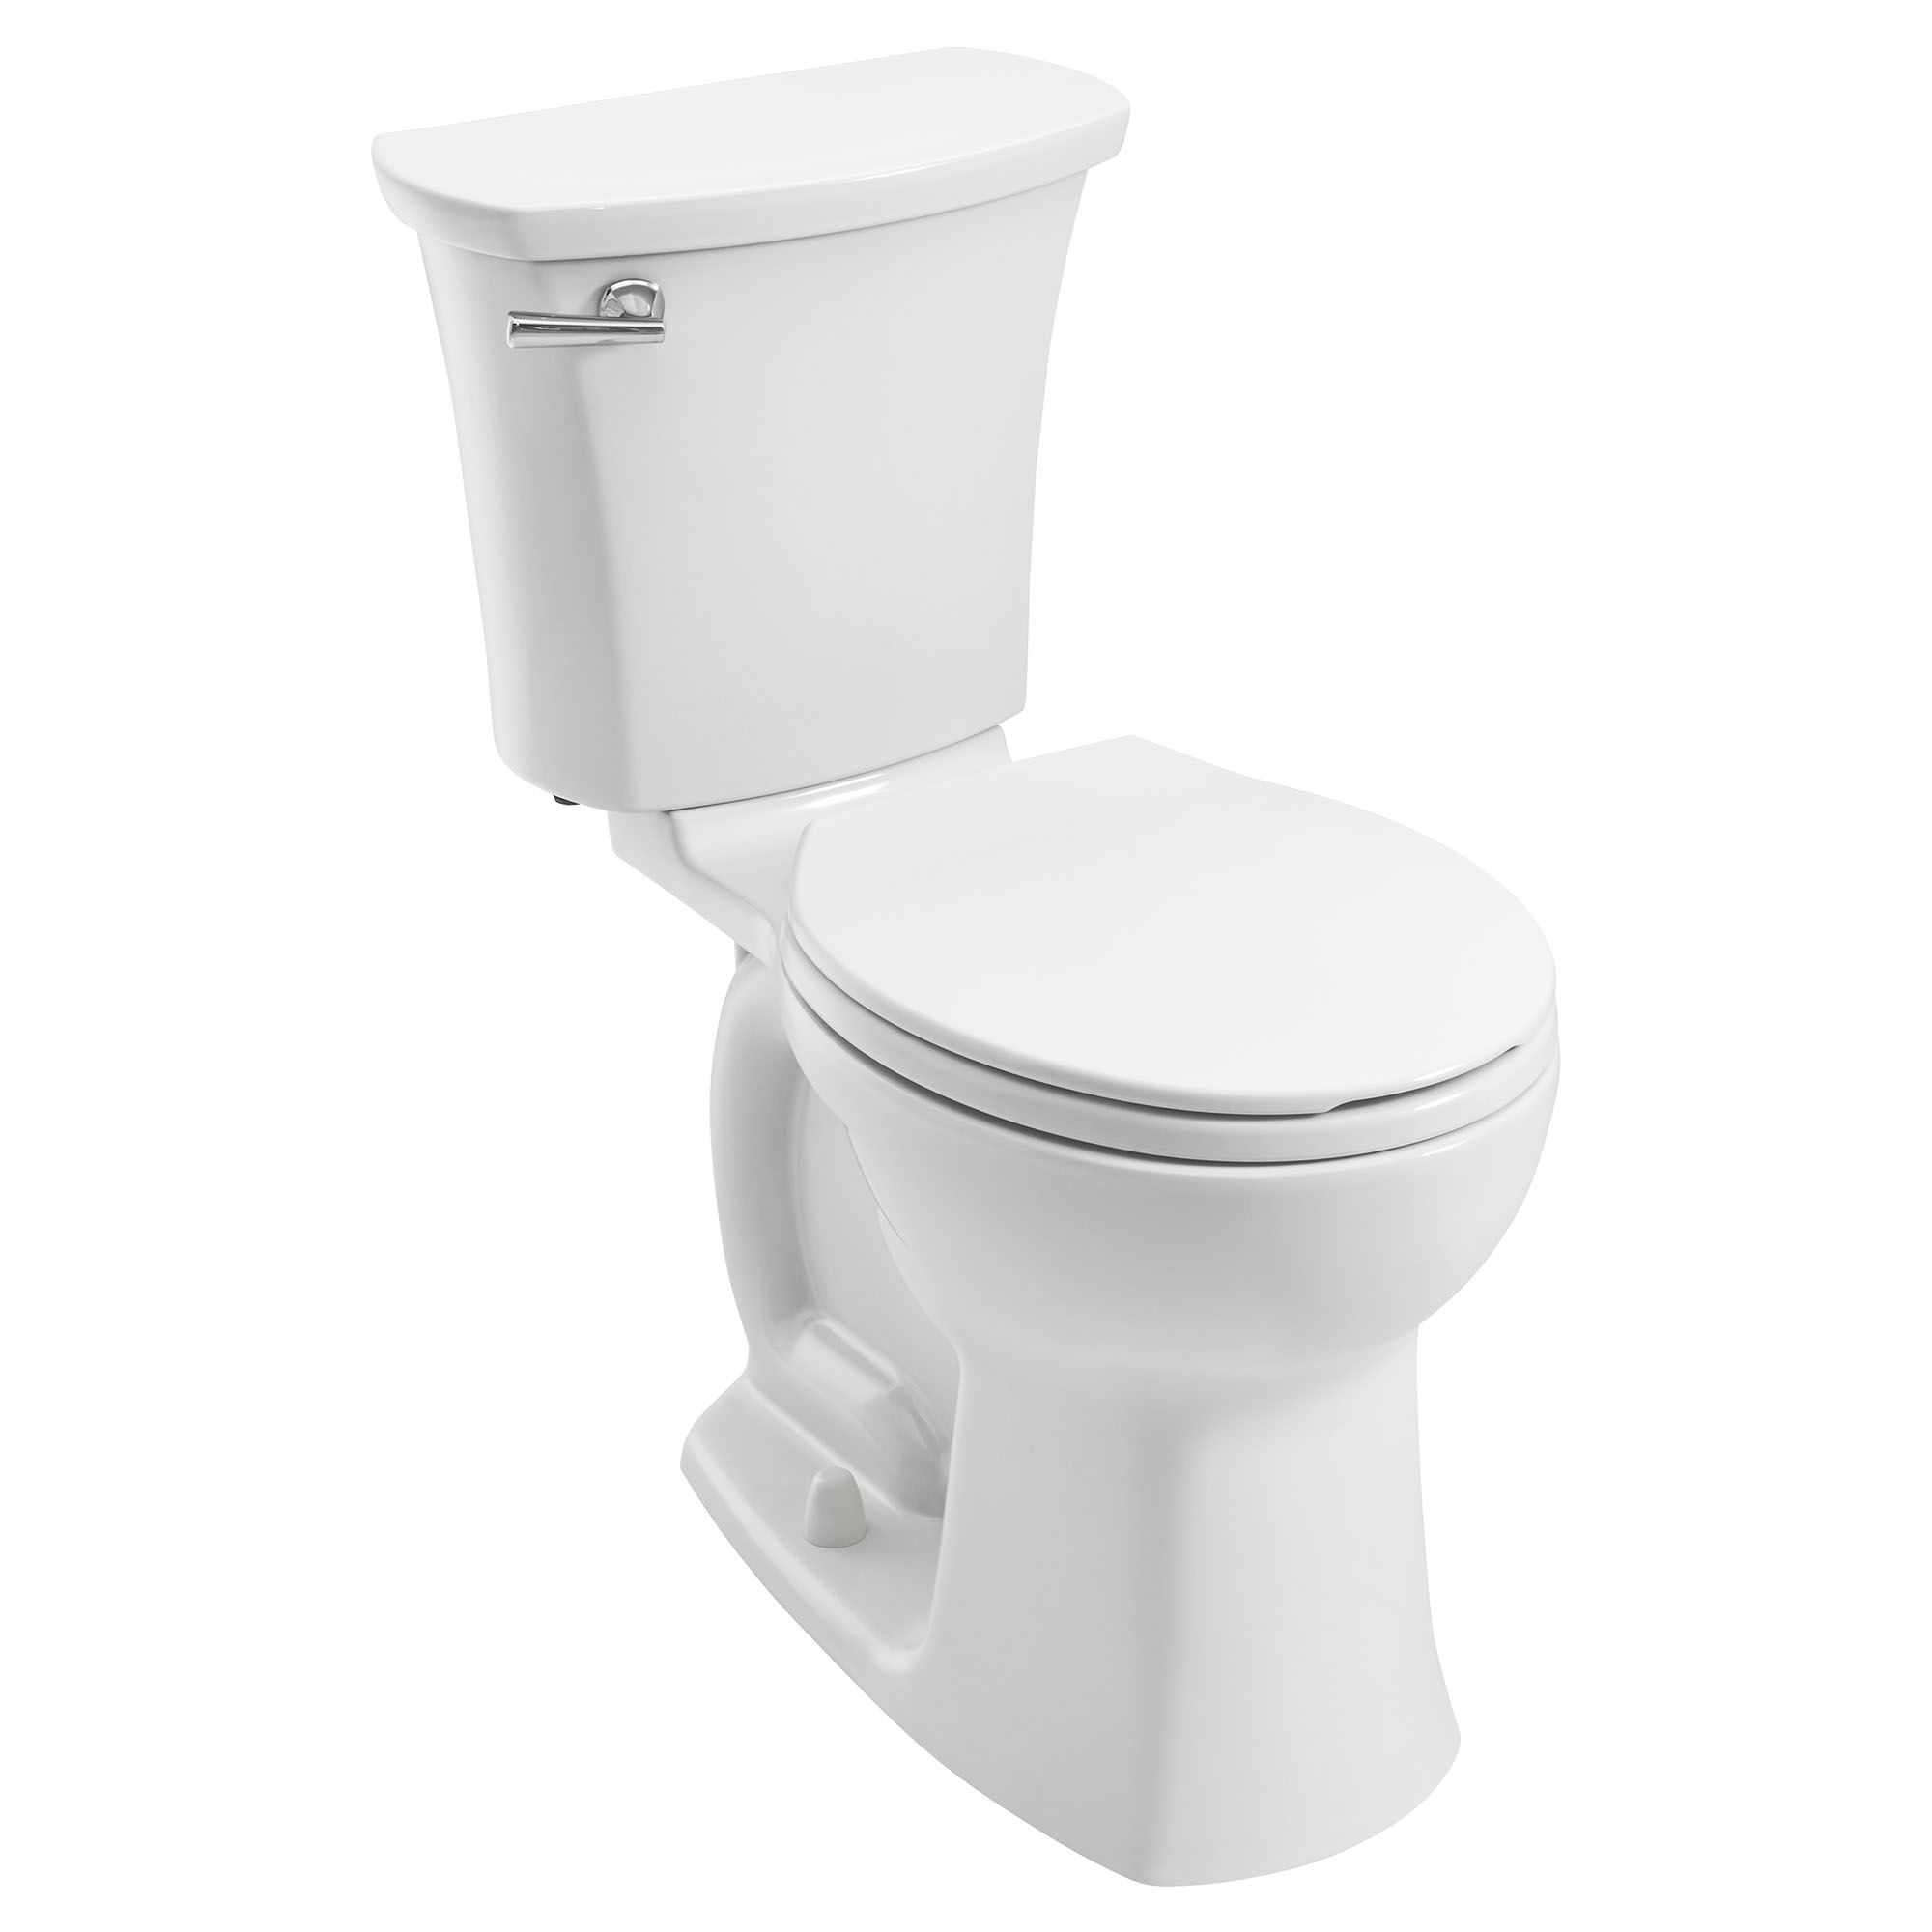 The Edgemere Right Height Round Front 10 Rough In Toilet Is A Great Option For Compact Bathrooms Coordi Edgemere Compact Bathroom American Standard